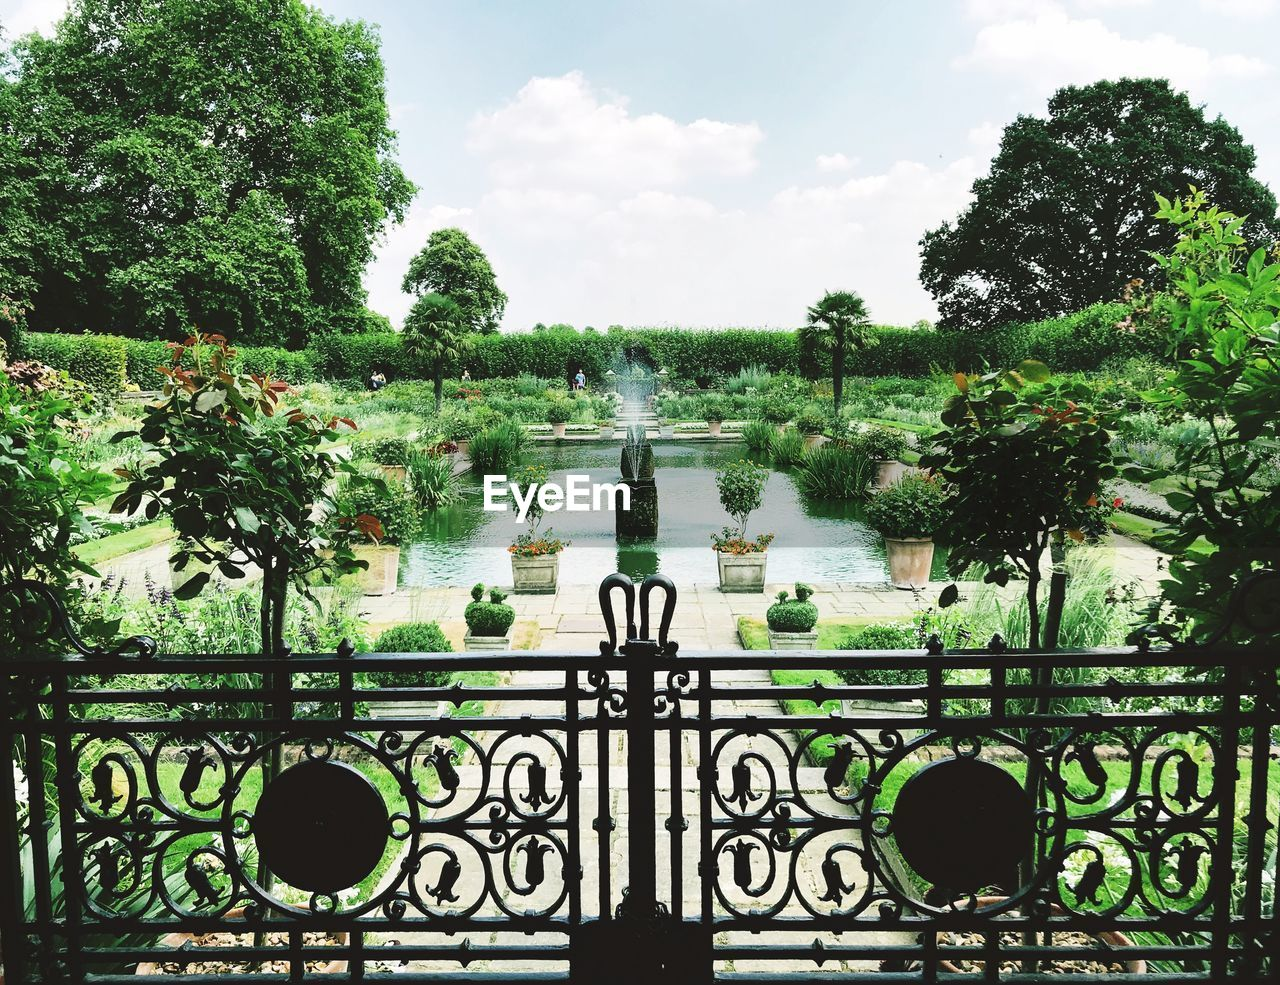 water, plant, tree, nature, day, sky, reflection, architecture, no people, growth, lake, green color, built structure, formal garden, outdoors, cloud - sky, garden, railing, beauty in nature, ornamental garden, ornate